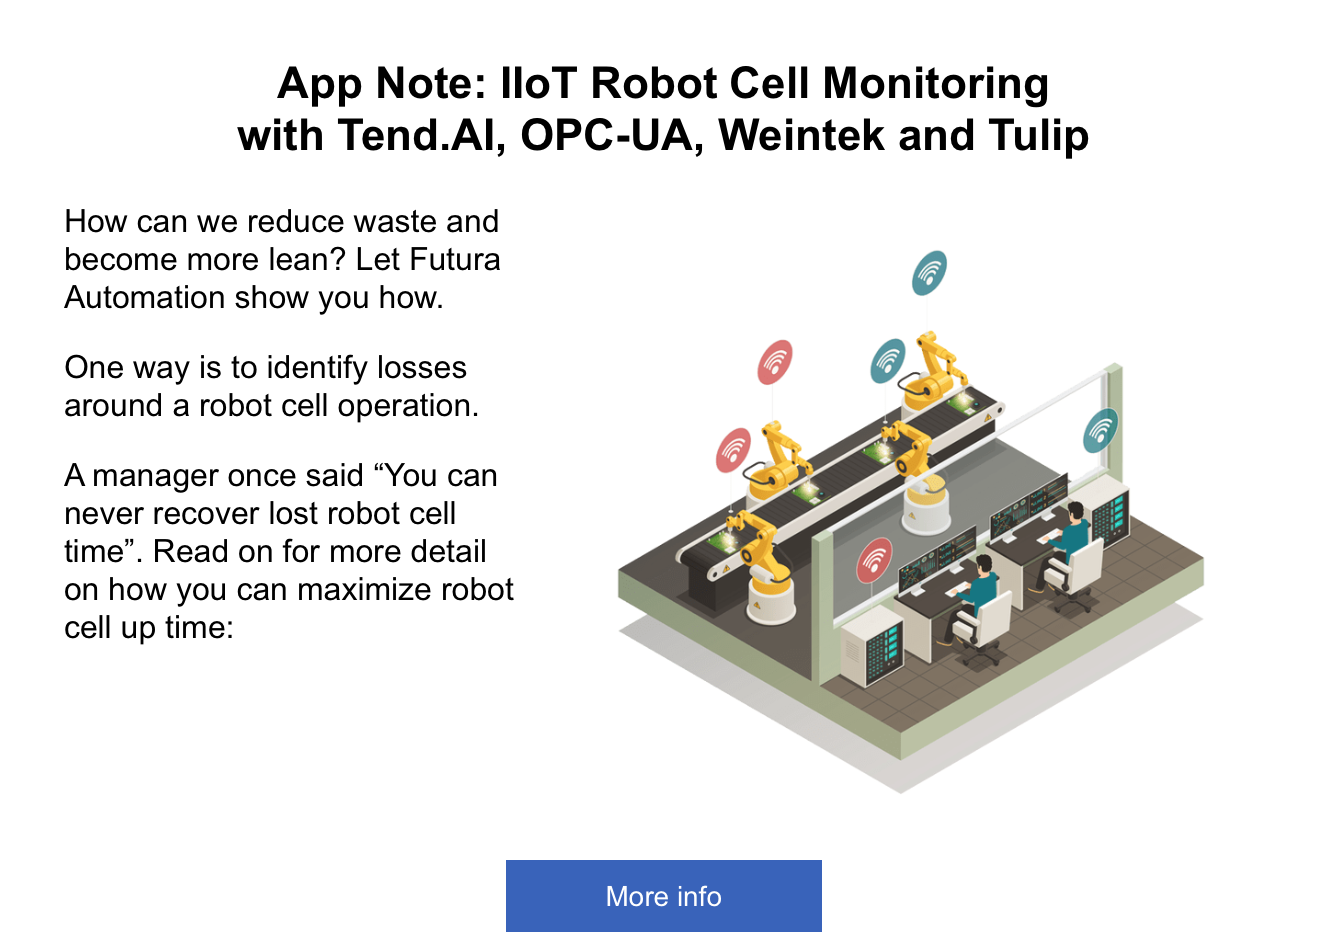 Robot Cell Monitoring and Tend AI